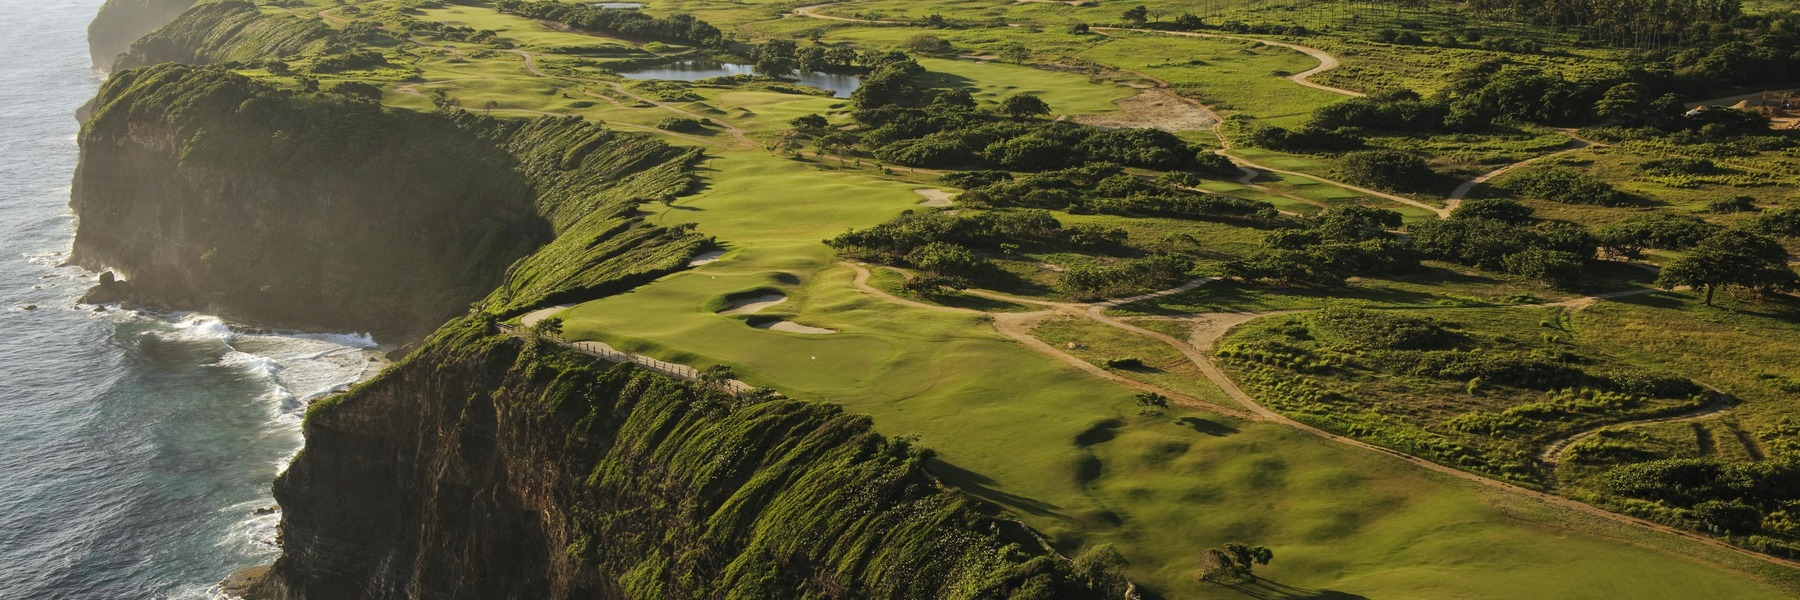 Golf Vacation Package - Spectacular Royal Isabela Resort Stay & Play - $422 per day!